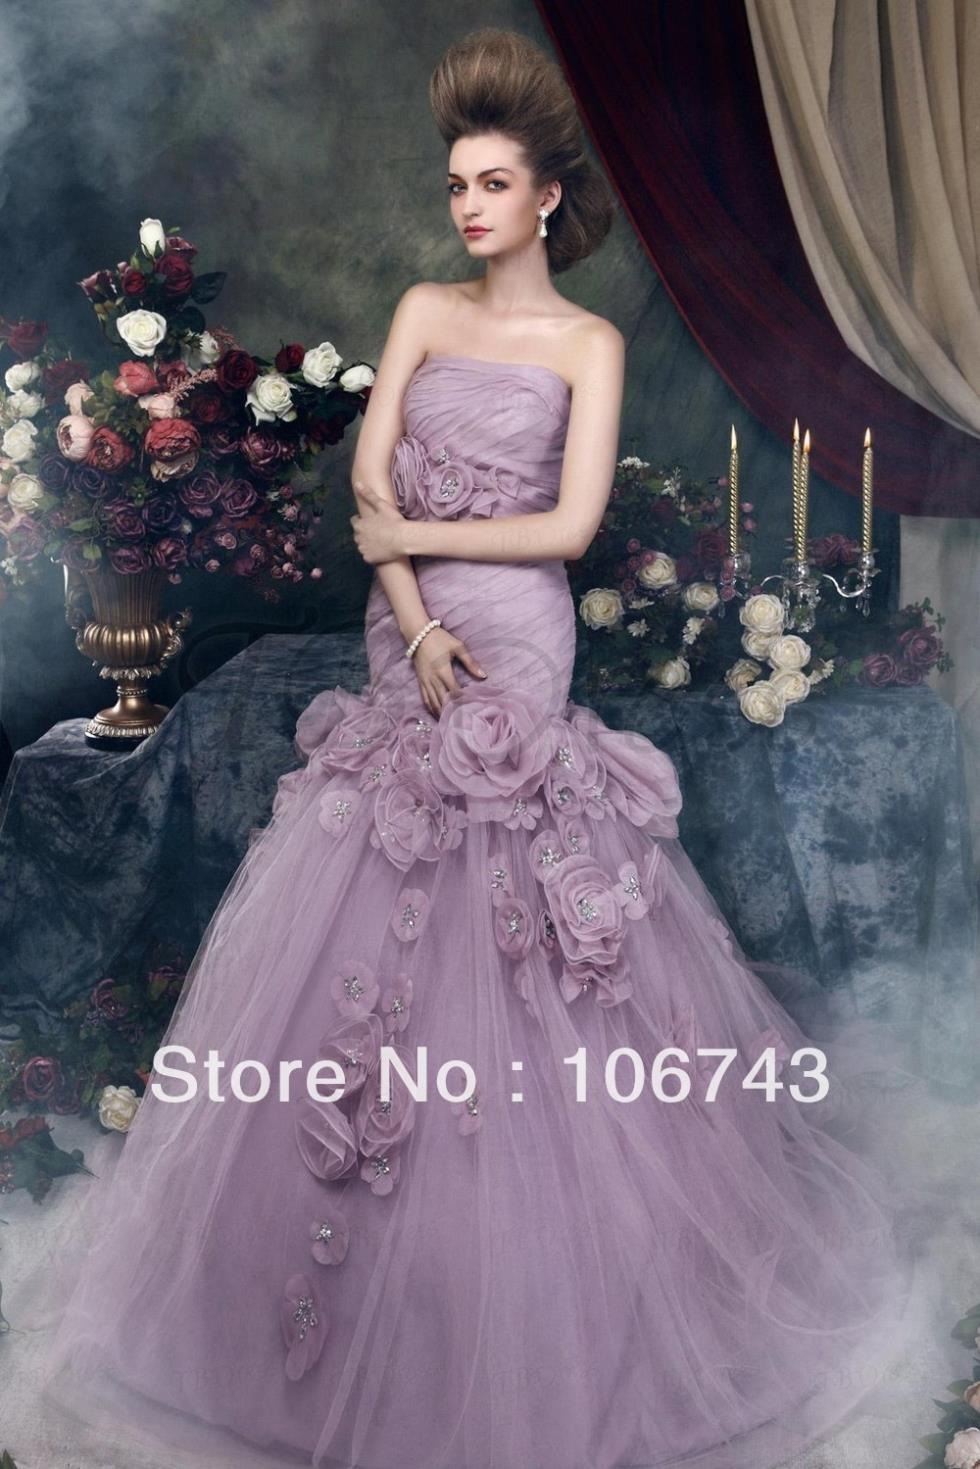 2016 Wrap Floor-length Sweetheart Special Offer Victorian Purple Fishtail Bridal Gowns Real Mermaid Tail Handmade Wedding Dress